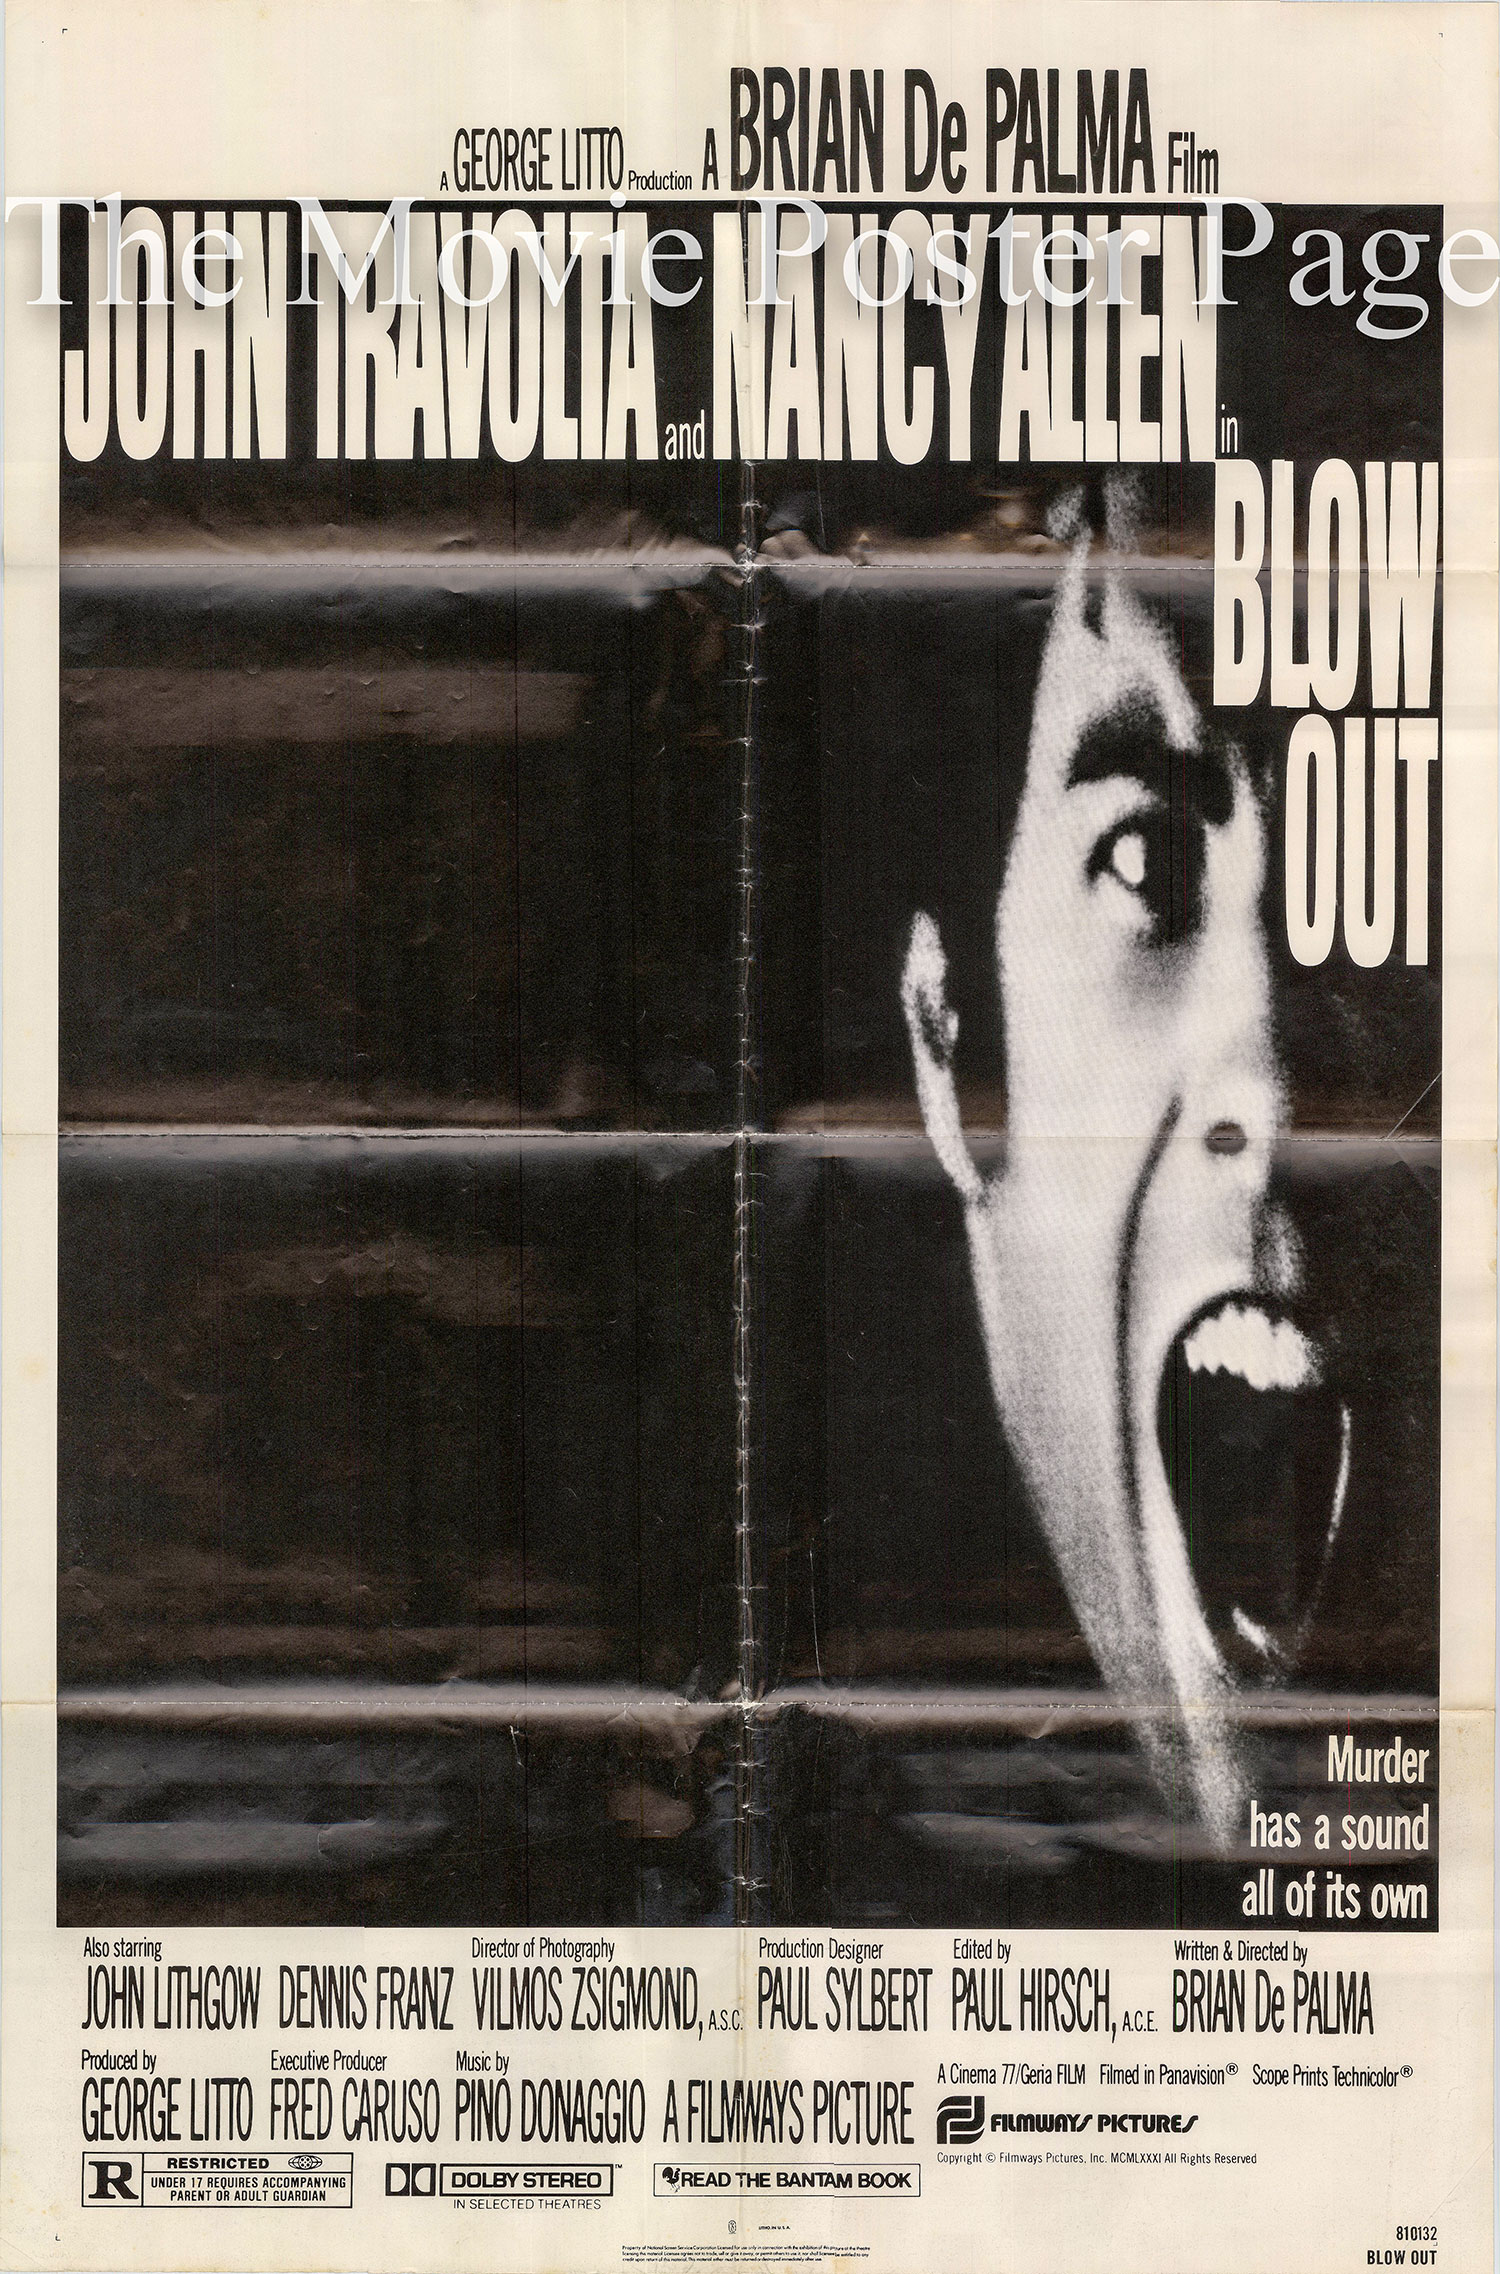 Pictured is a US one-sheet promotional poster for the 1981 Brian De Palma film Blow Out starring John Travolta.